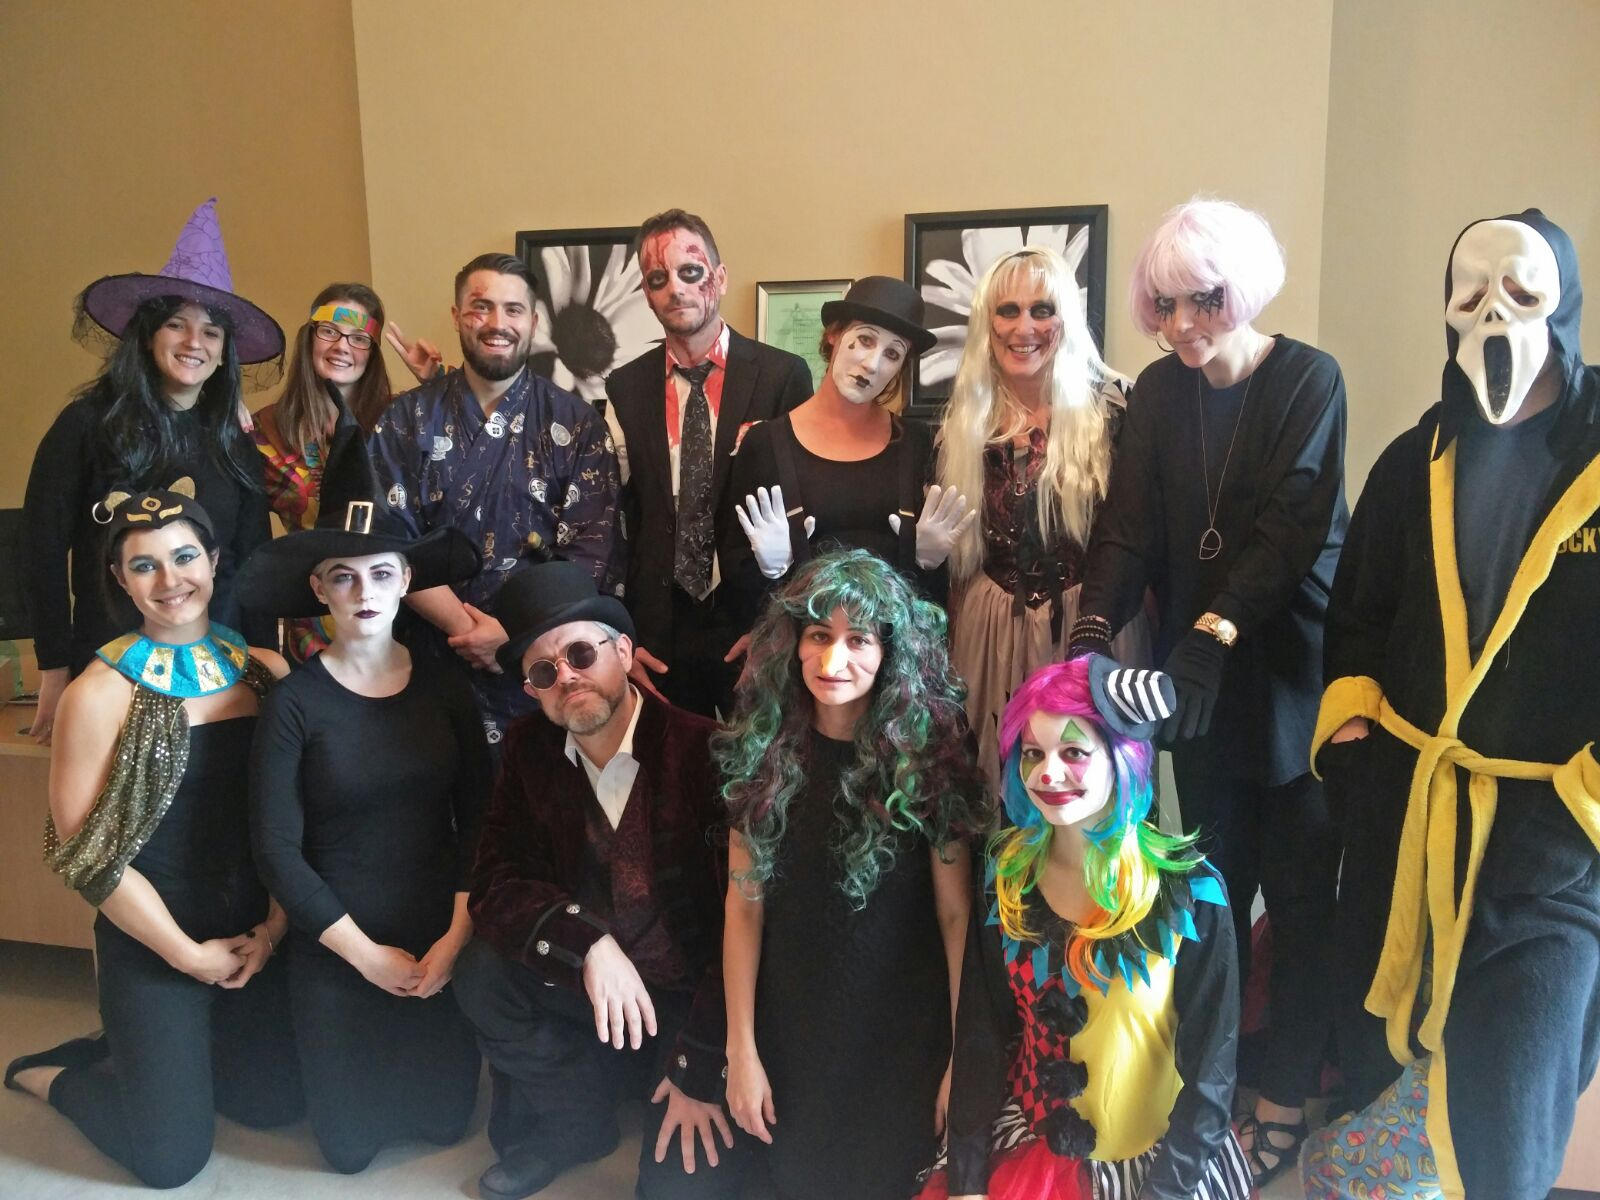 Recruiter's Halloween party